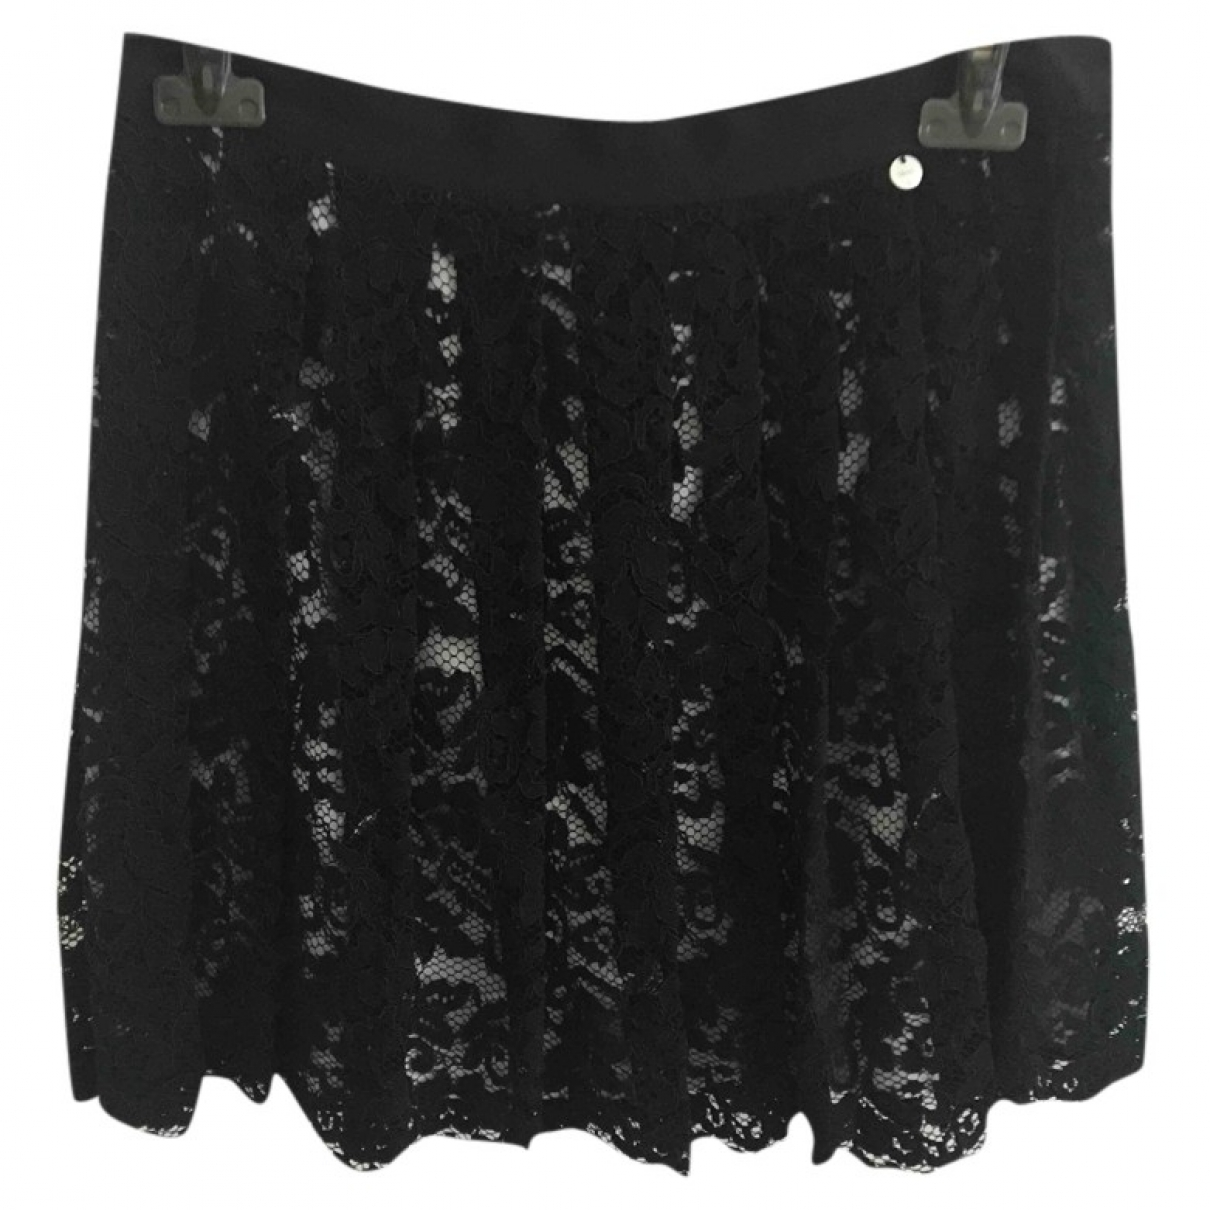 Liu.jo \N Black skirt for Women 44 IT